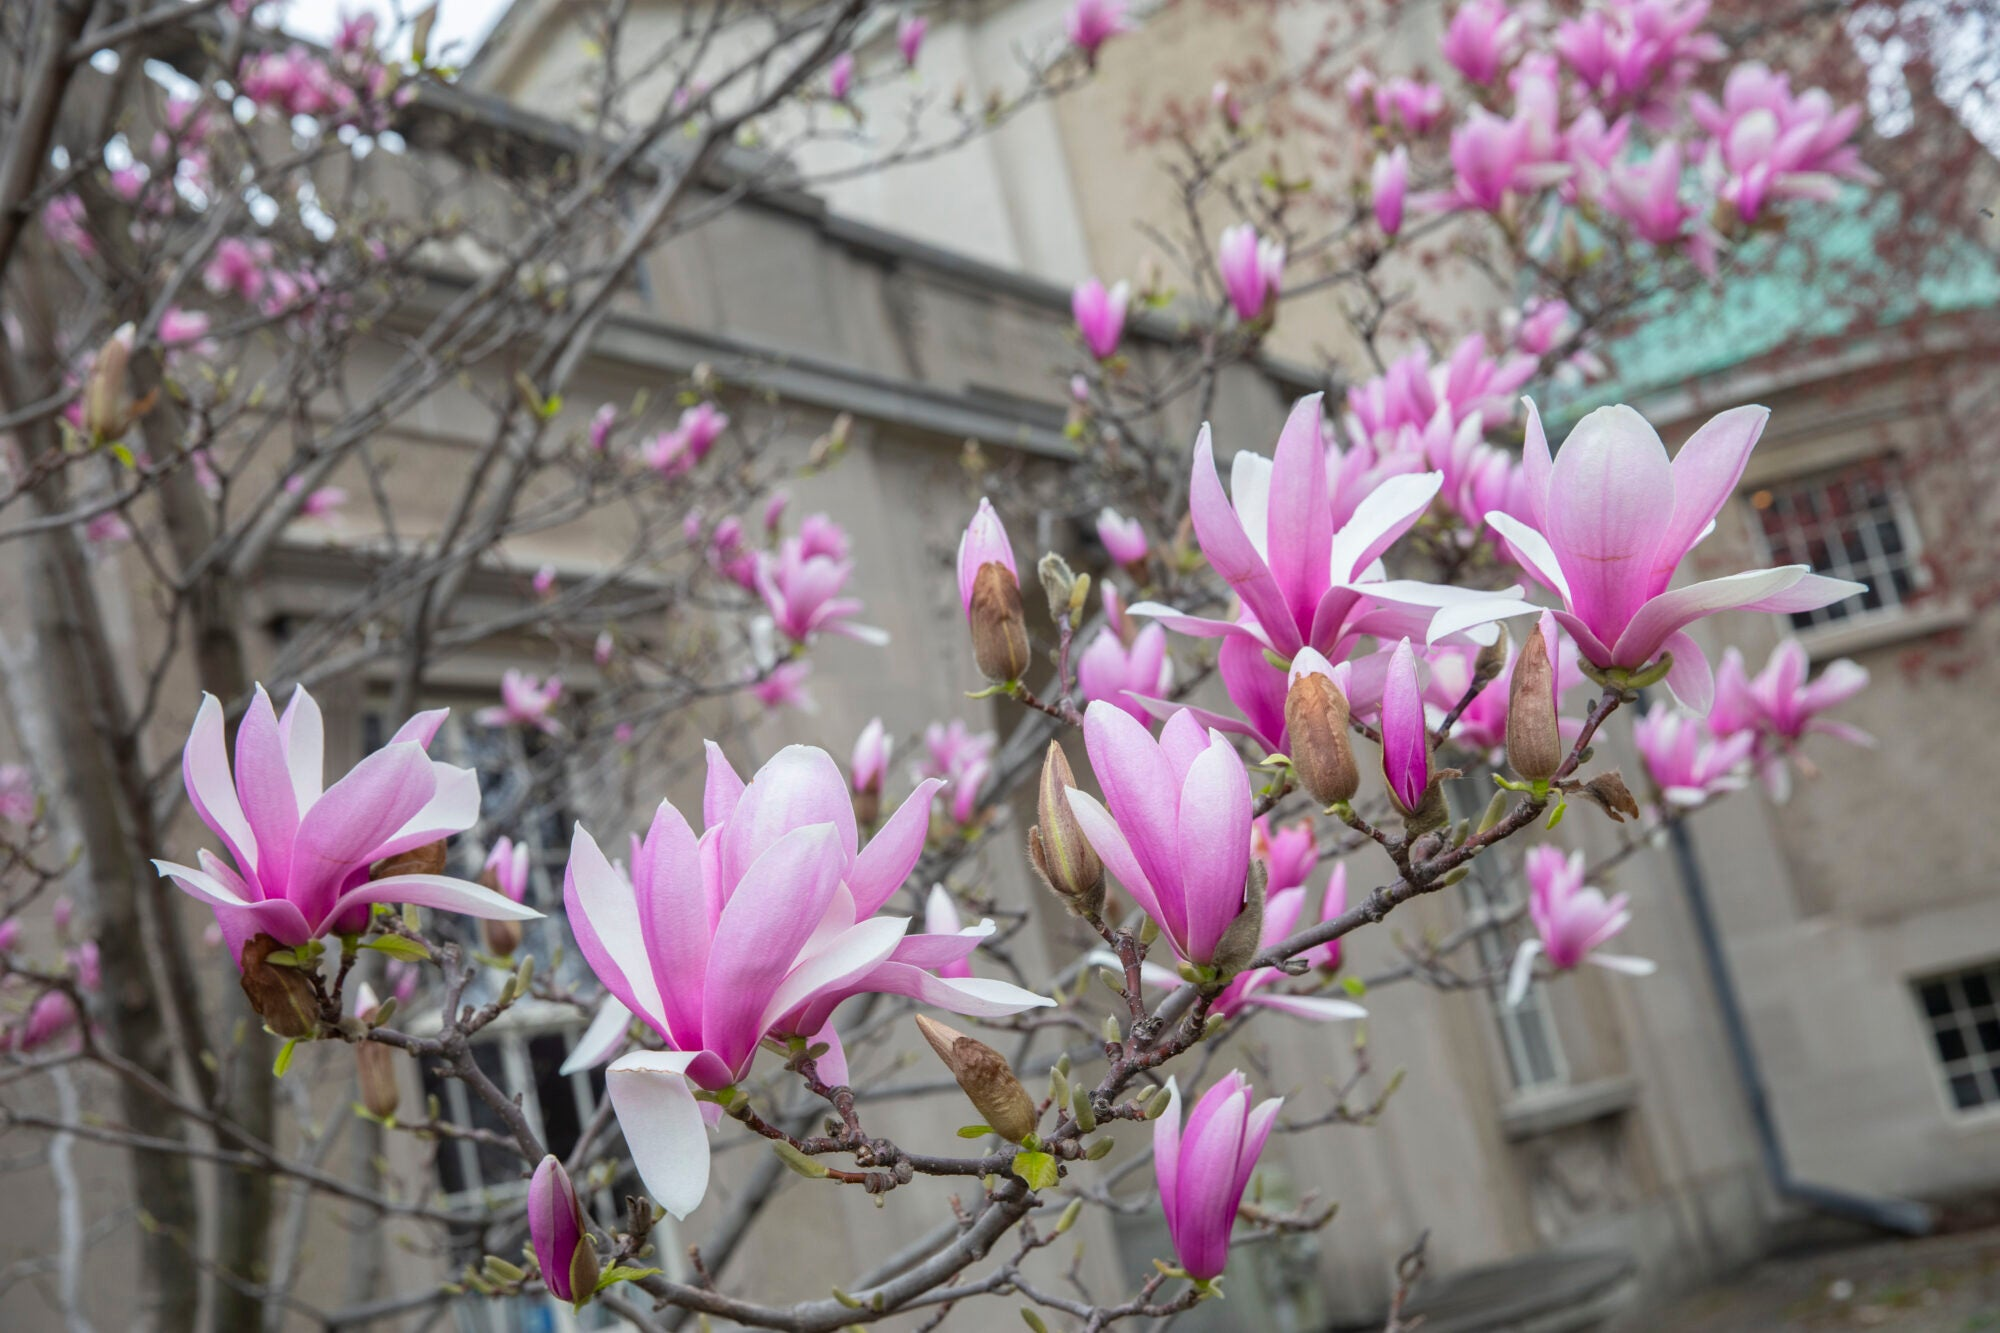 A tree blooming with pink and white flowers in front of a white building